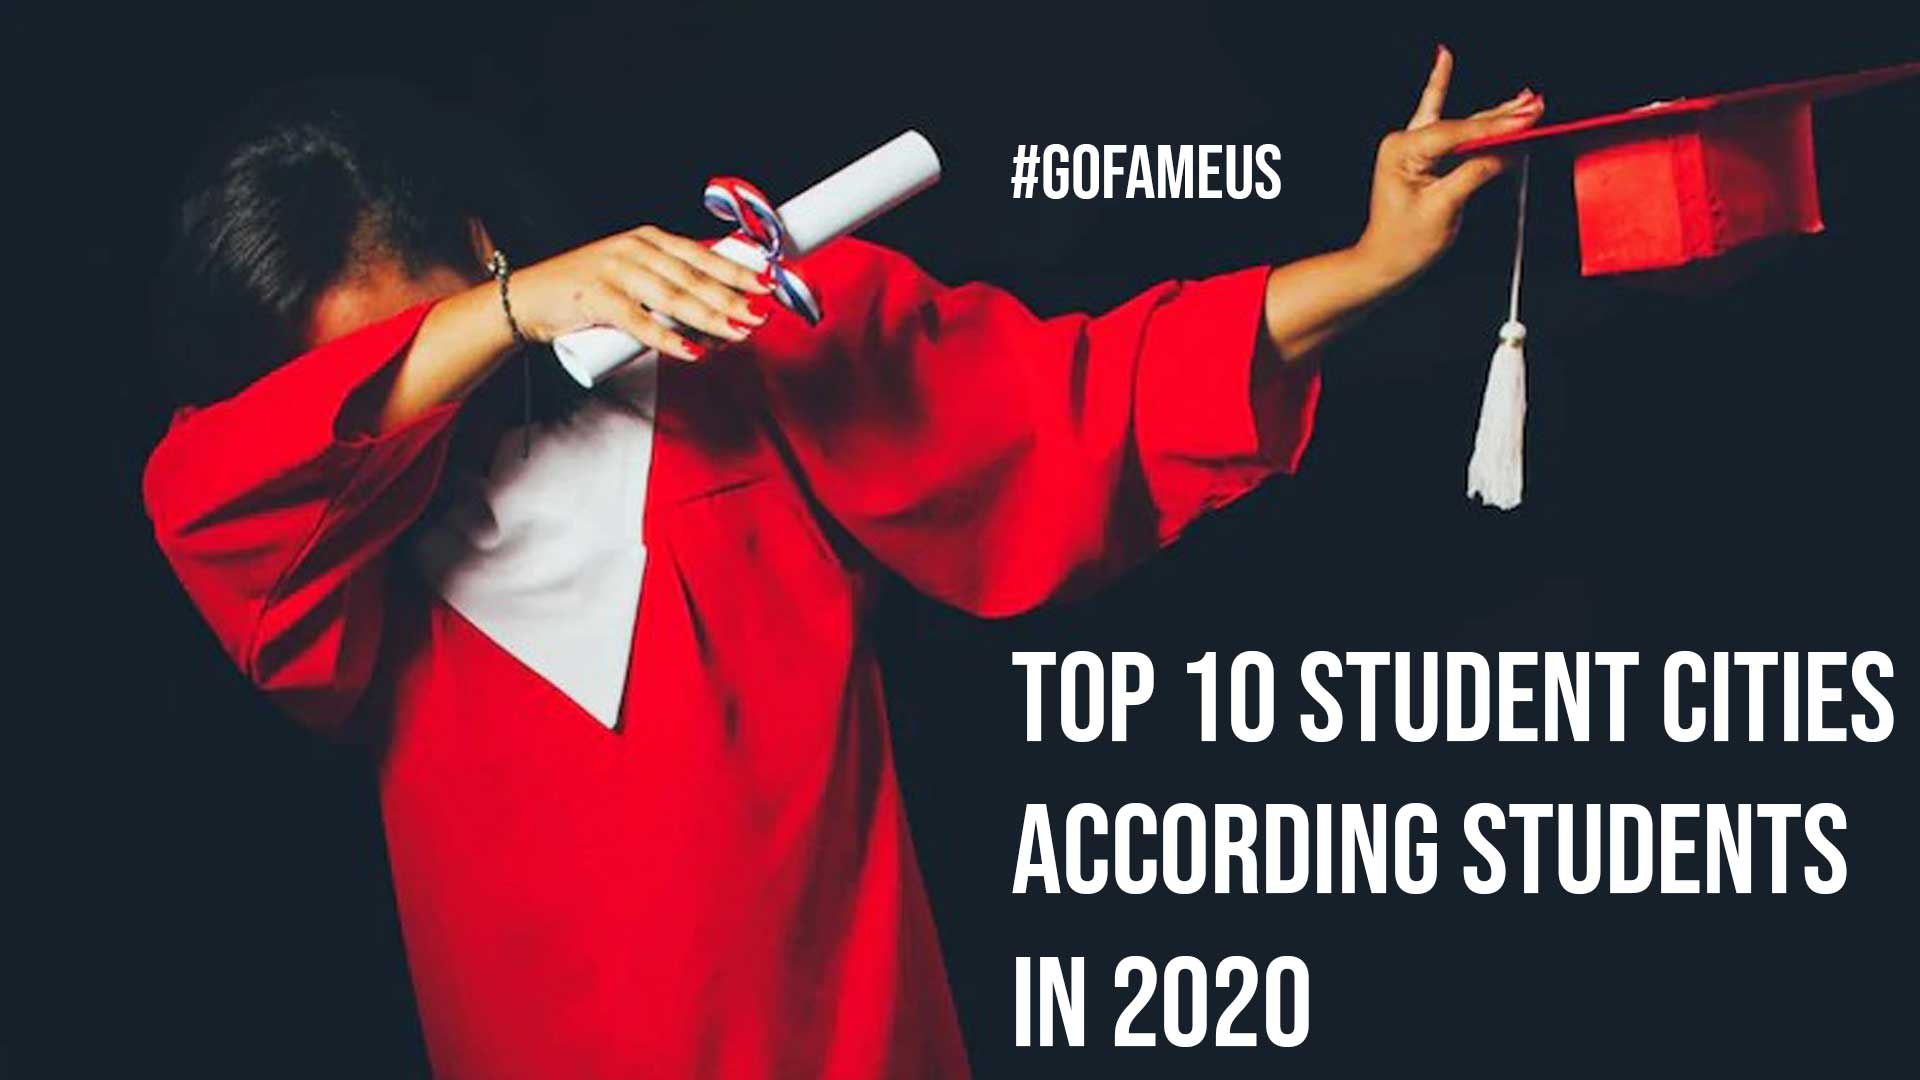 Top 10 Student Cities According Students in 2020